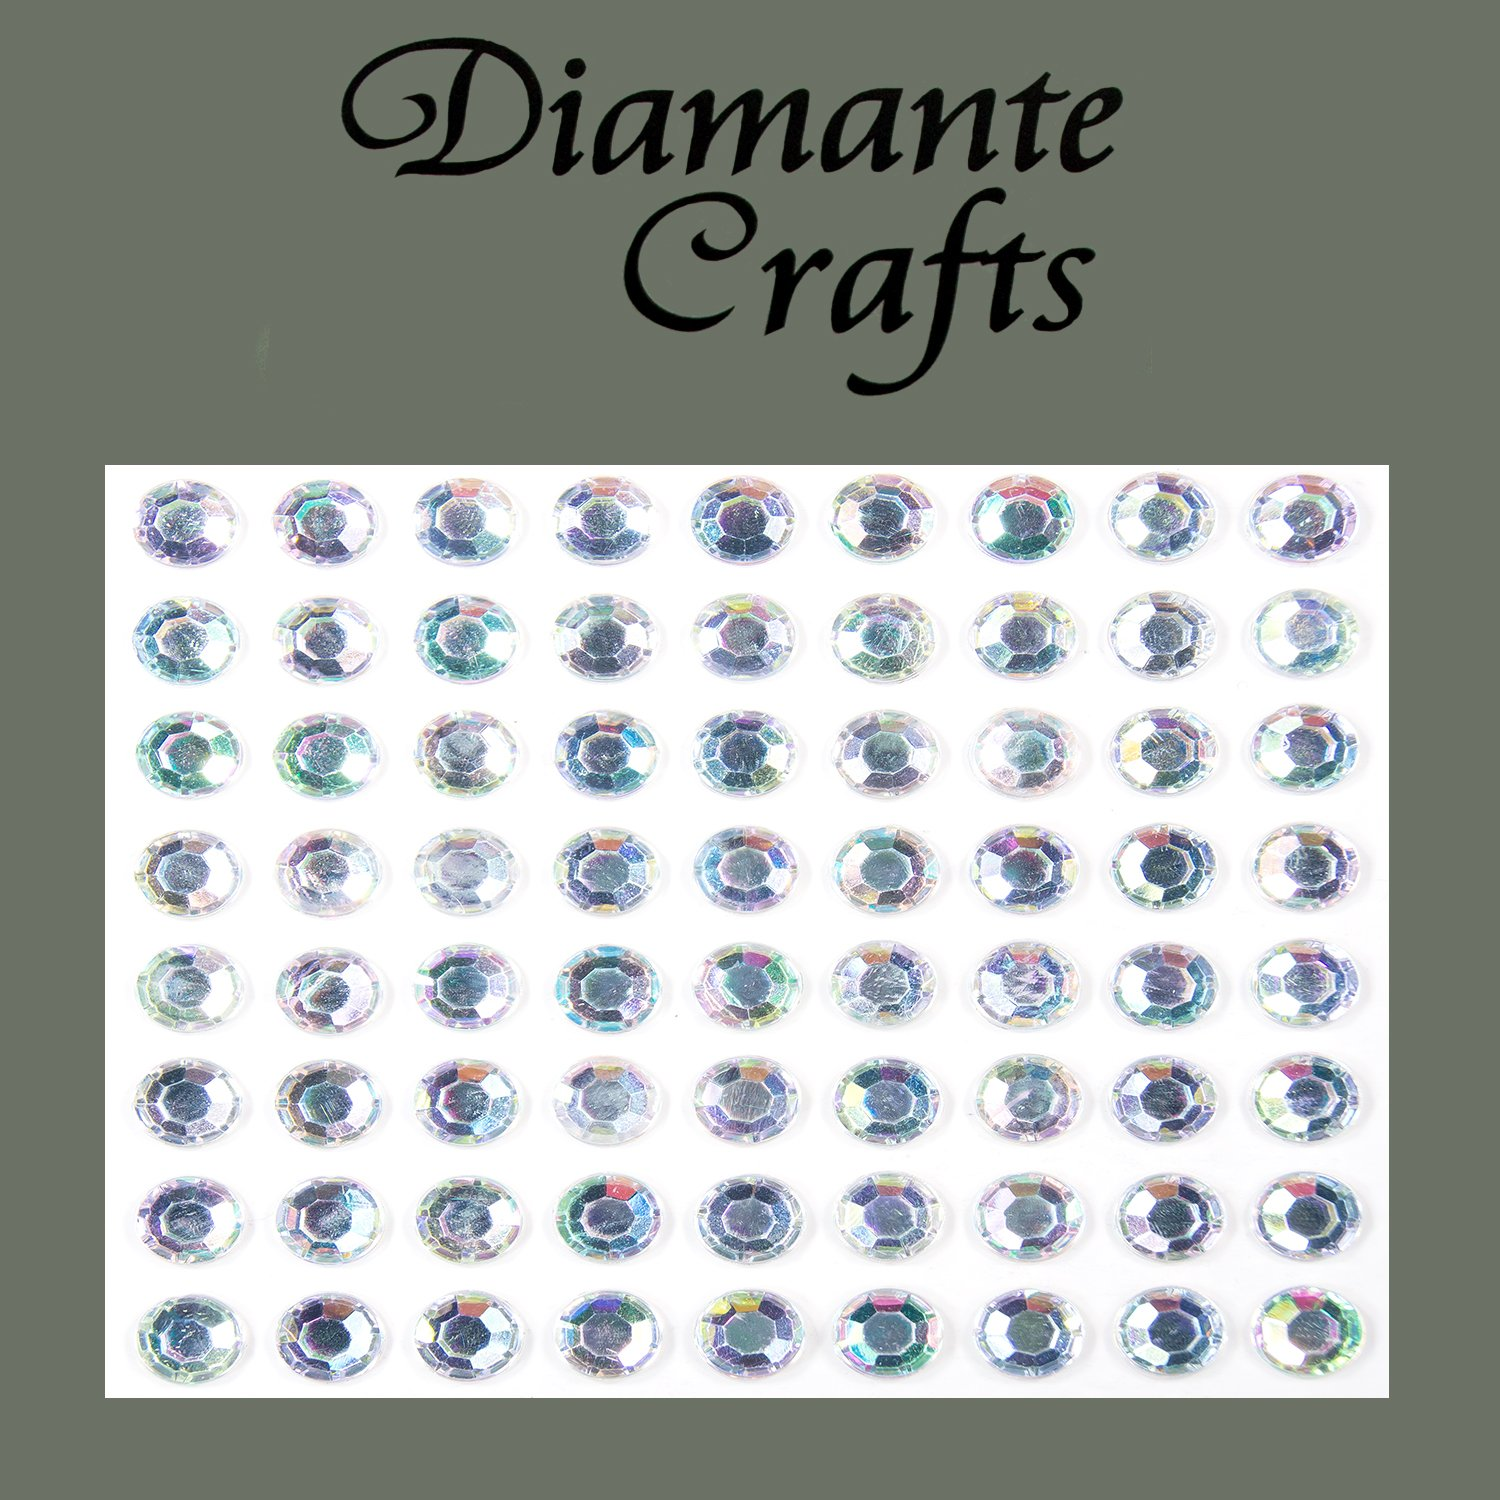 72 x 7mm Clear Iridescent AB Diamante Self Adhesive Rhinestone Body Vajazzle Gems - created exclusively for Diamante Crafts